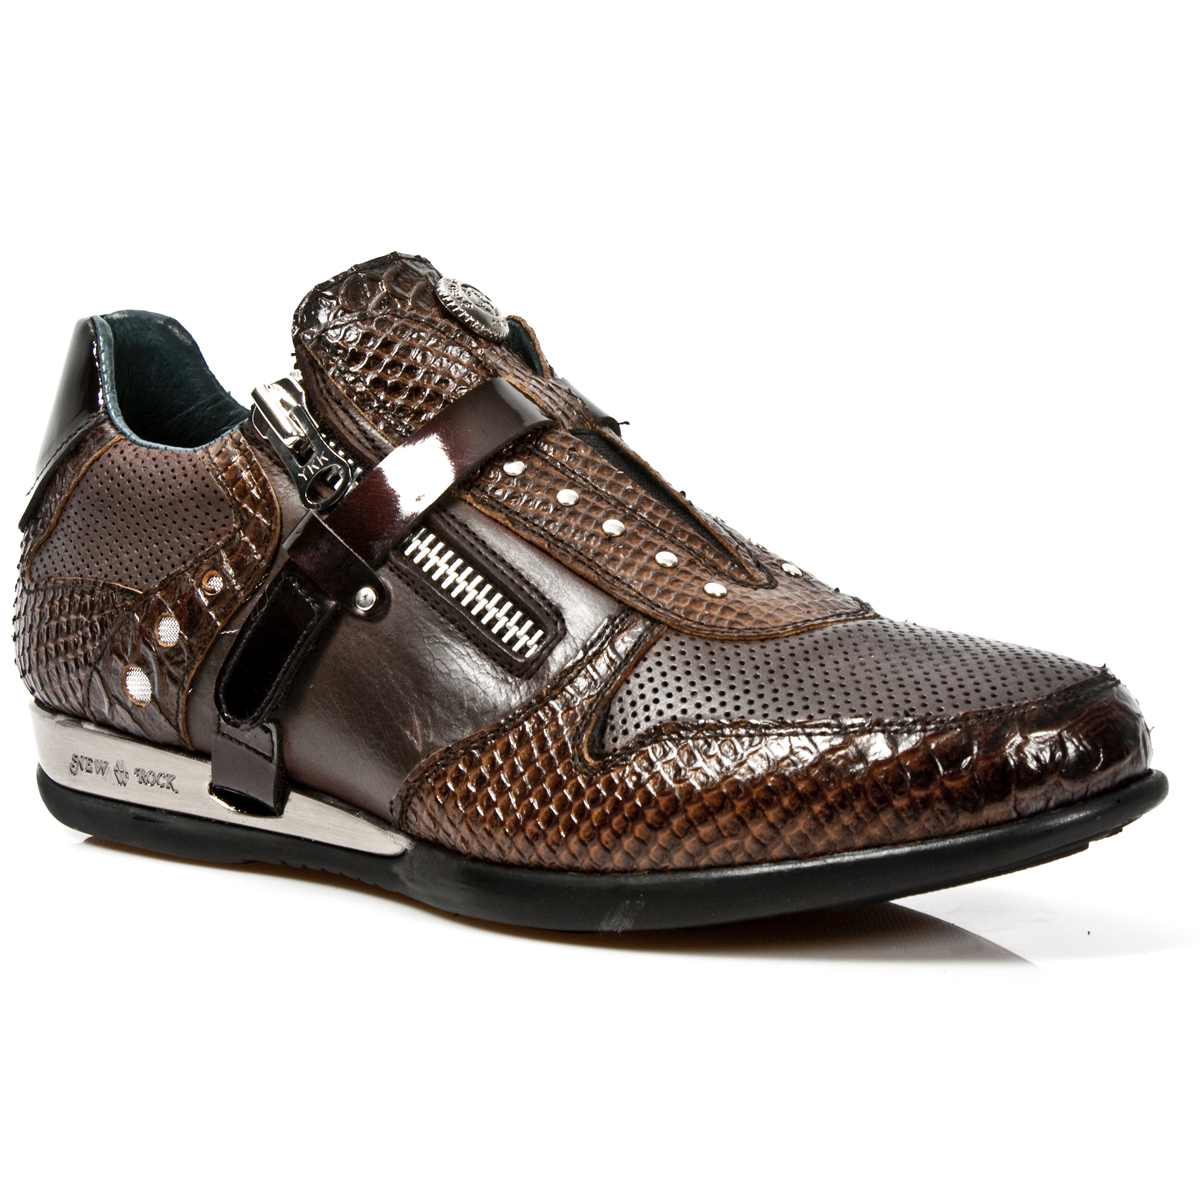 unisex hair styles brown leather serpentia hybrid dress shoes may take up to 2469